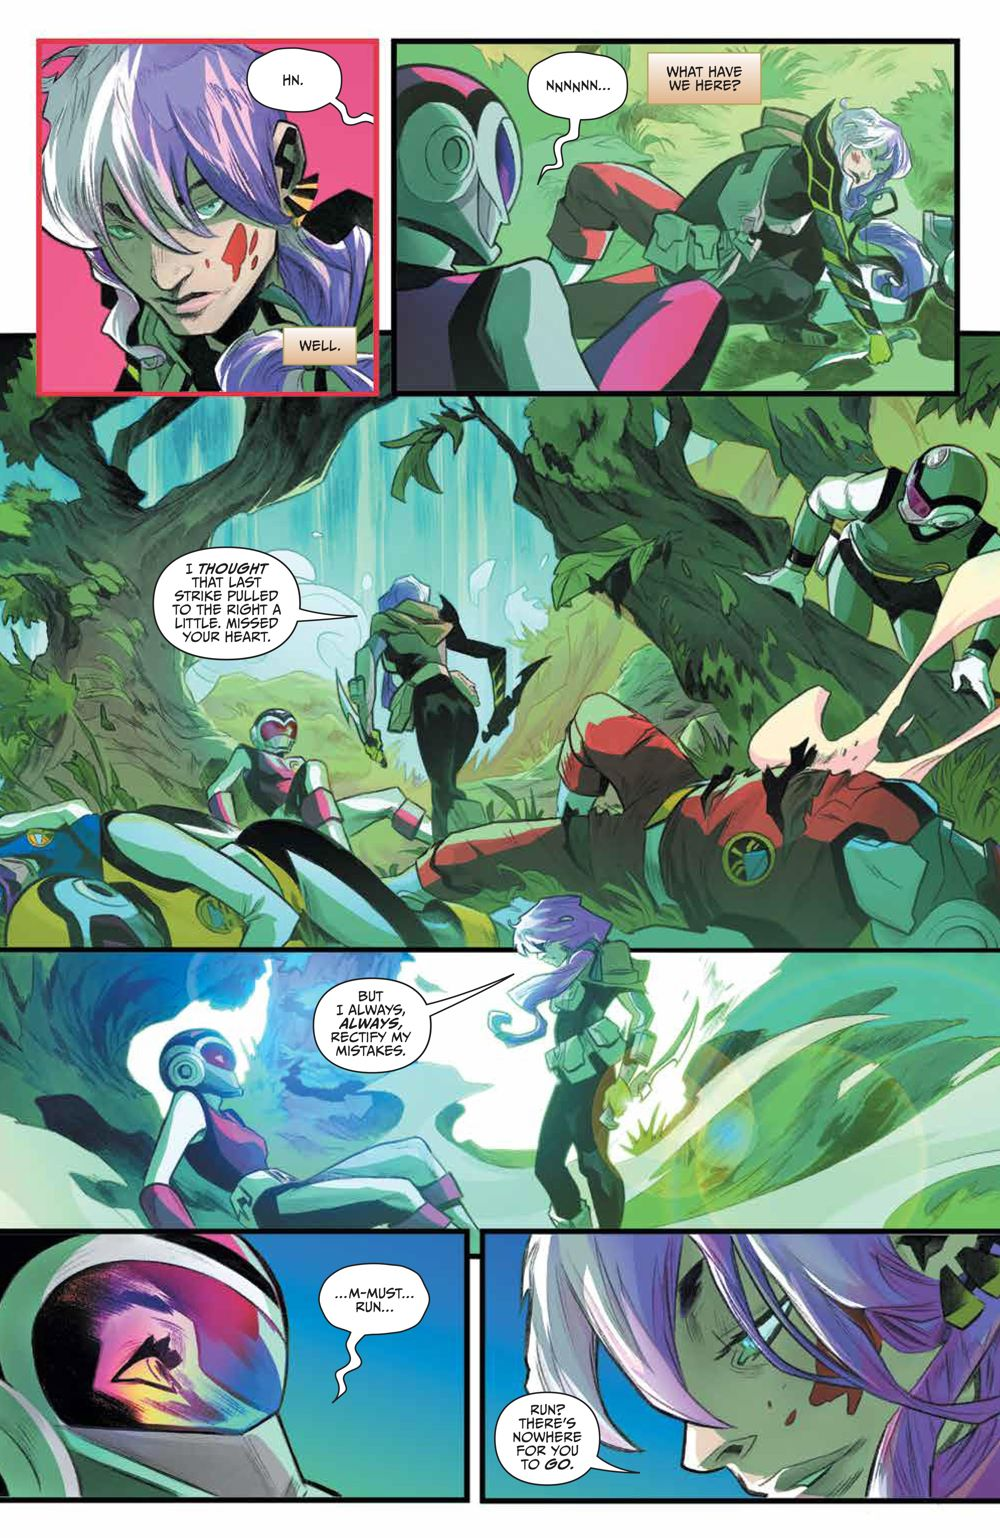 PR_Unlimited_HeirDarkness_001_PRESS_4 ComicList Previews: POWER RANGERS UNLIMITED HEIR TO THE DARKNESS #1